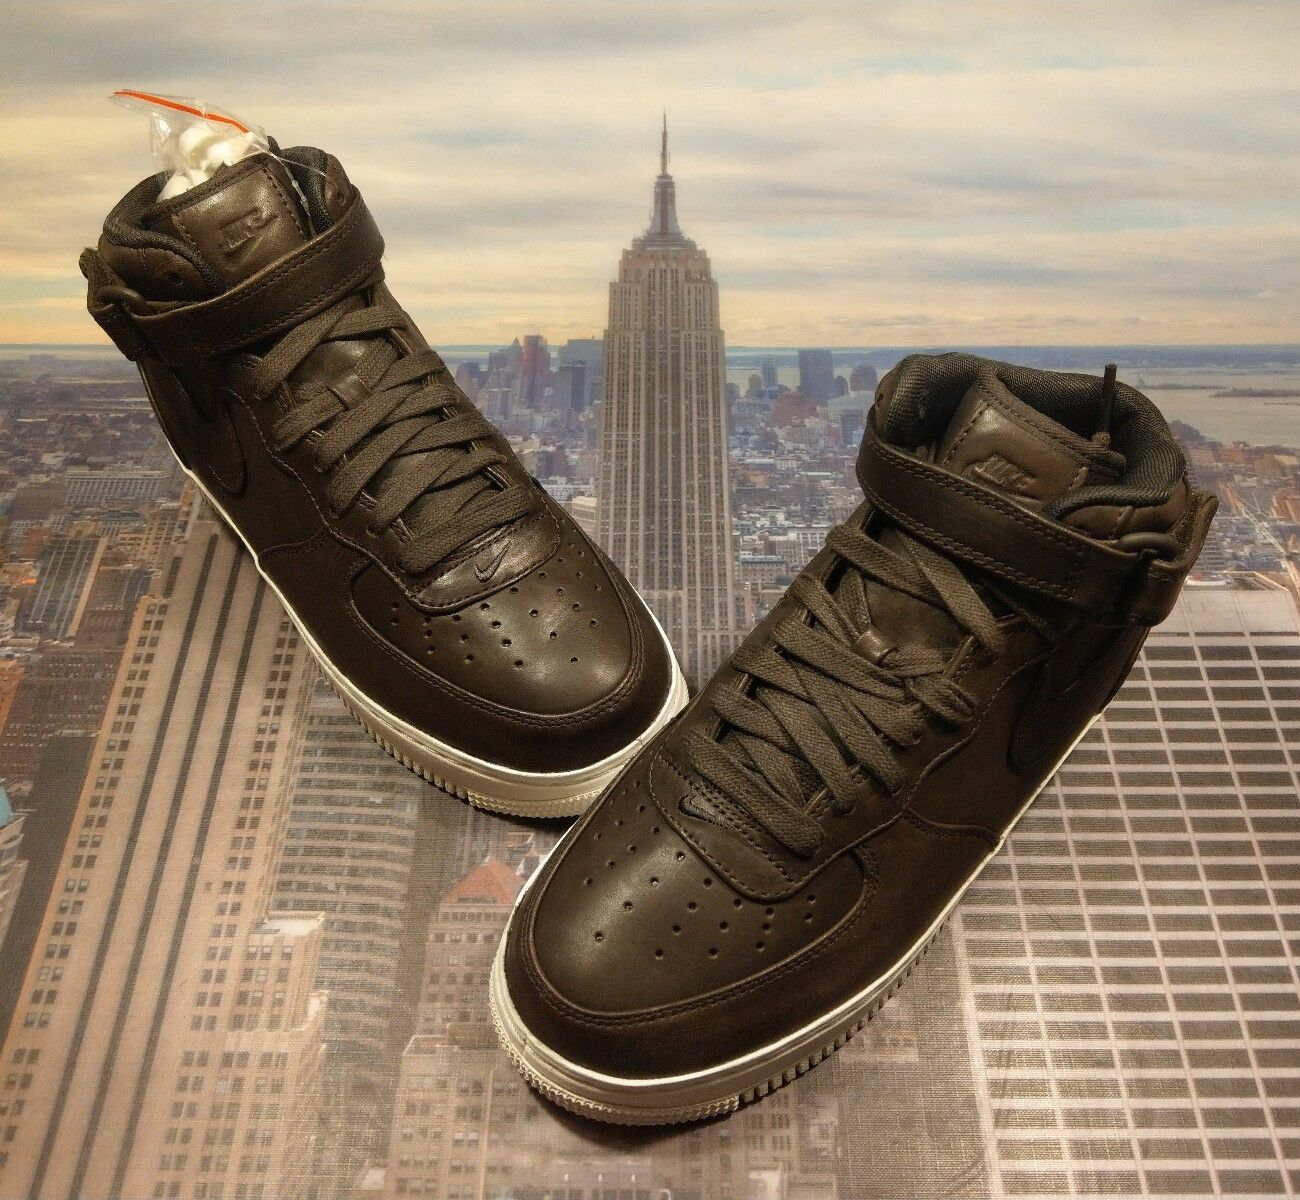 Nike NikeLab Air Force 1 Mid Velvet Brown Men's Size 7 Low High 905619 200 Lunar